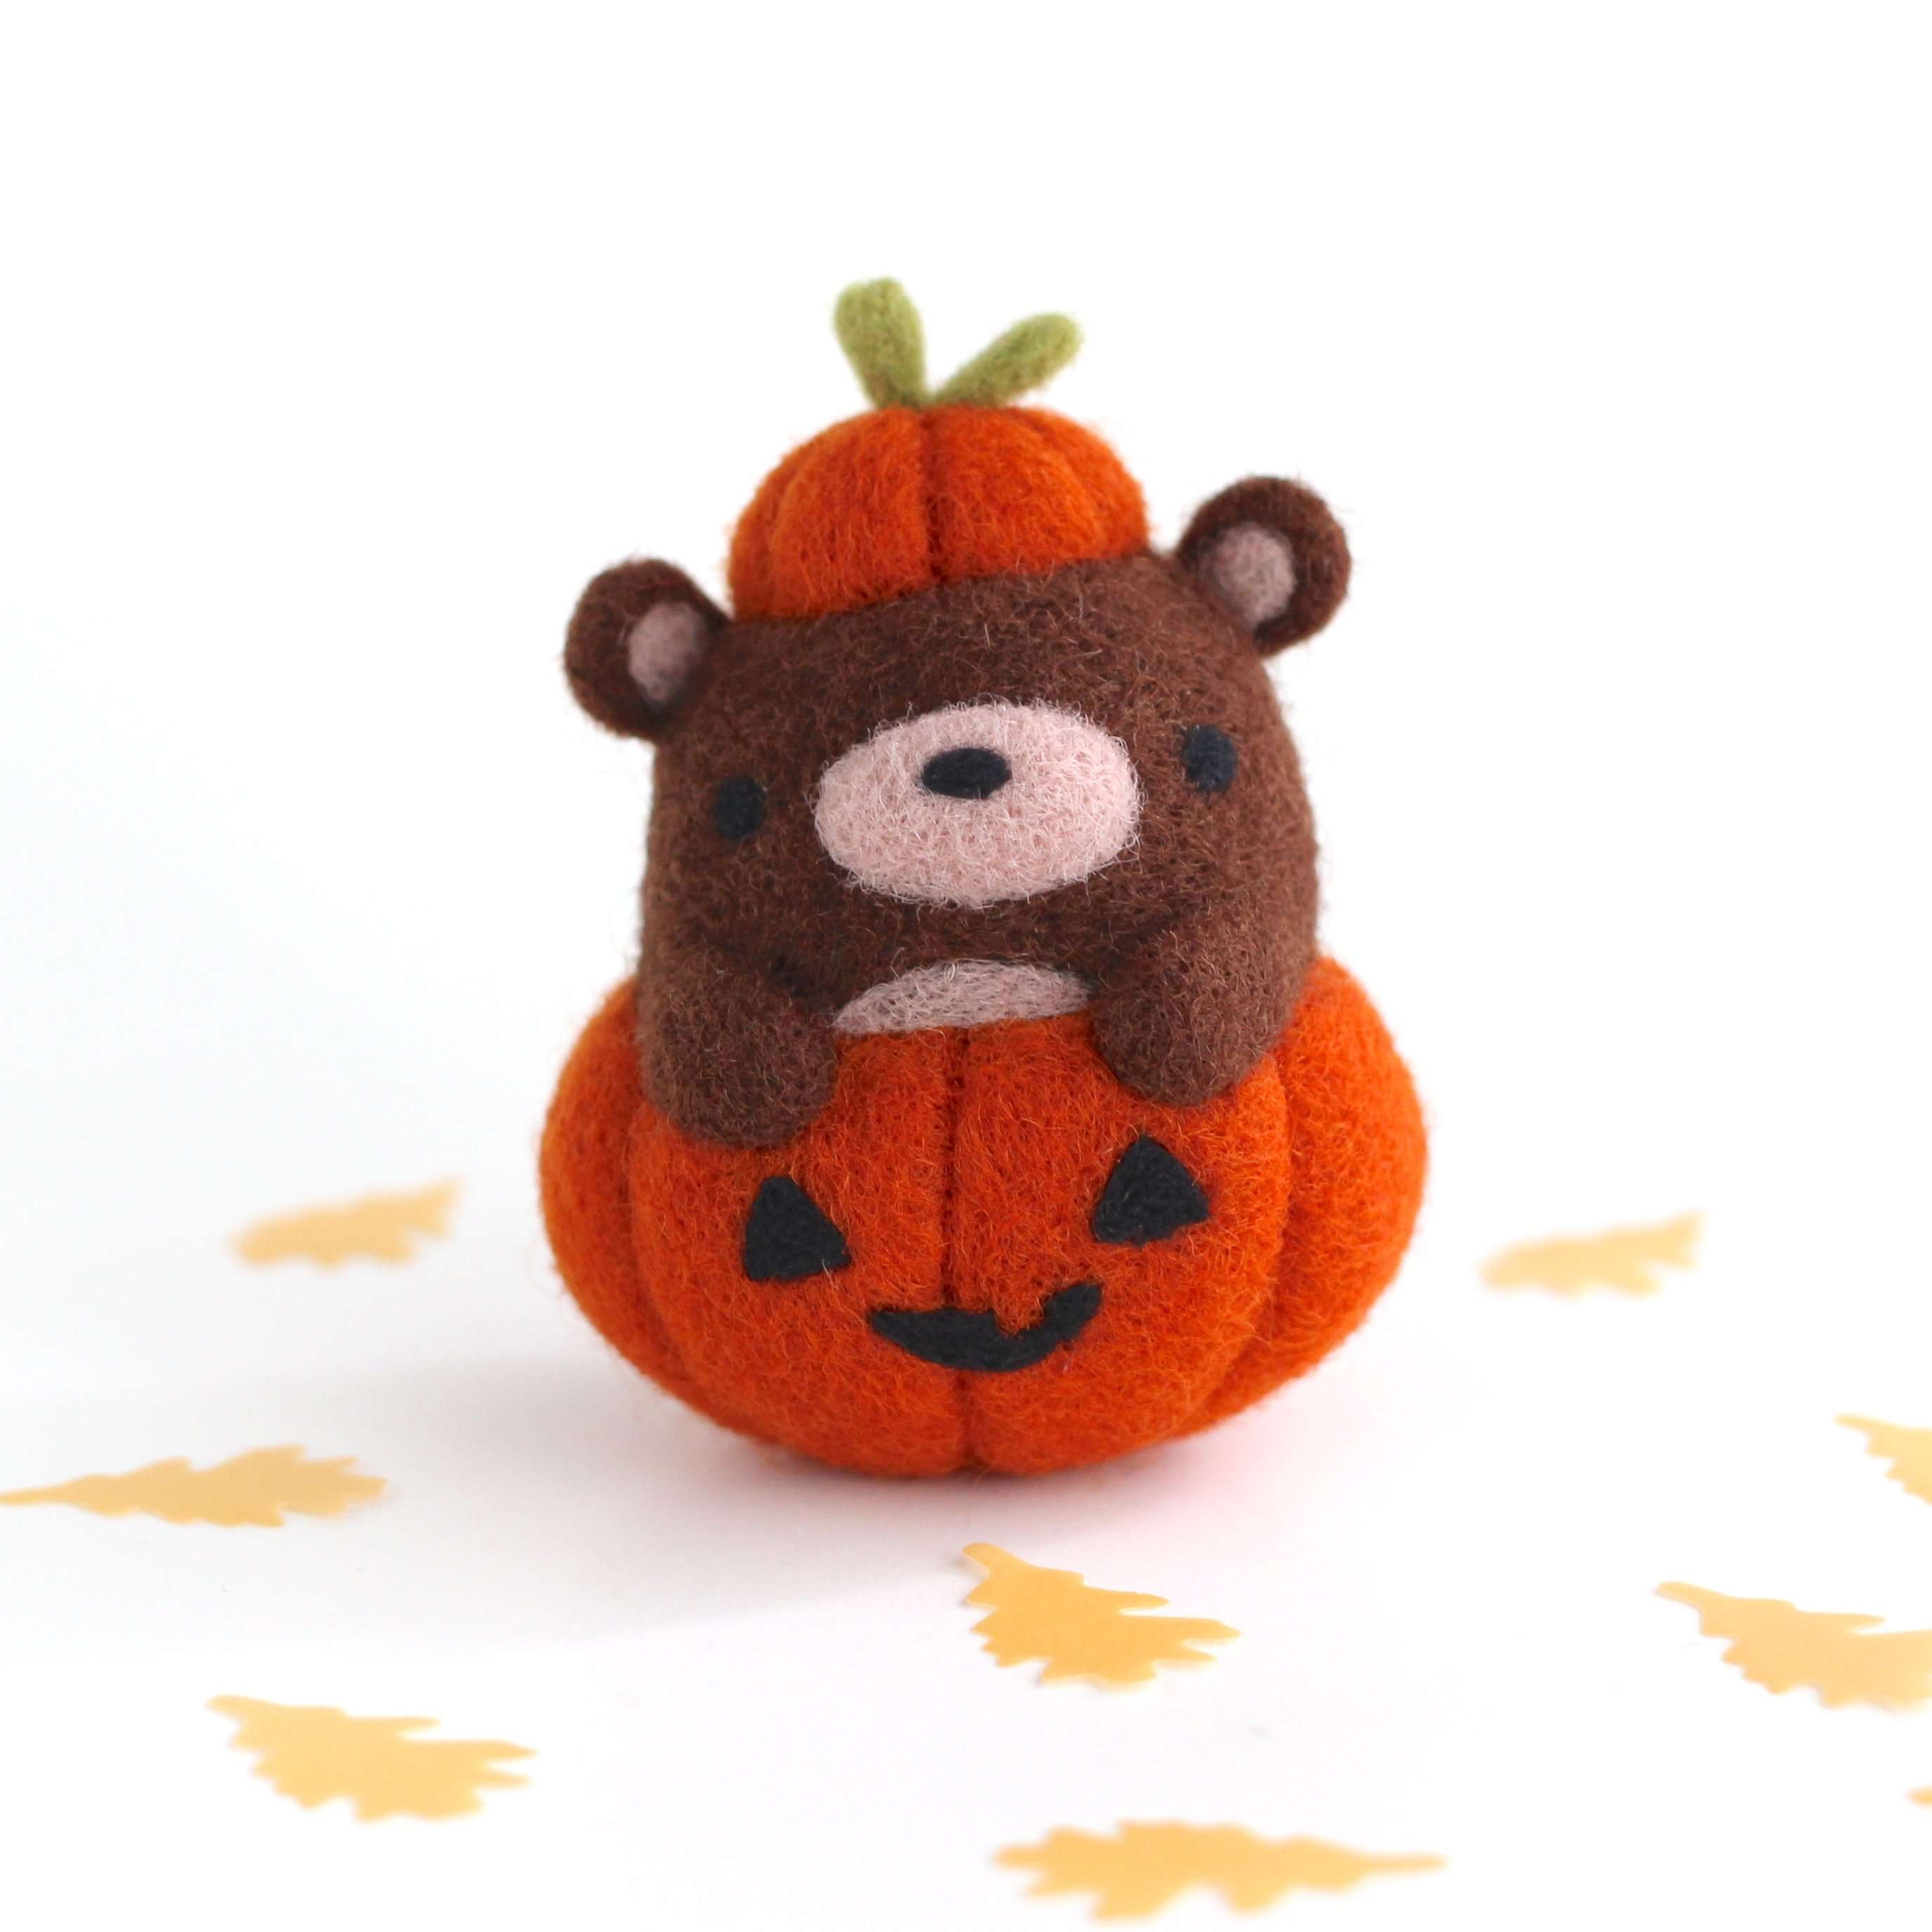 Needle Felted Brown Bear in Jack-o'-Lantern by Wild Whimsy Woolies